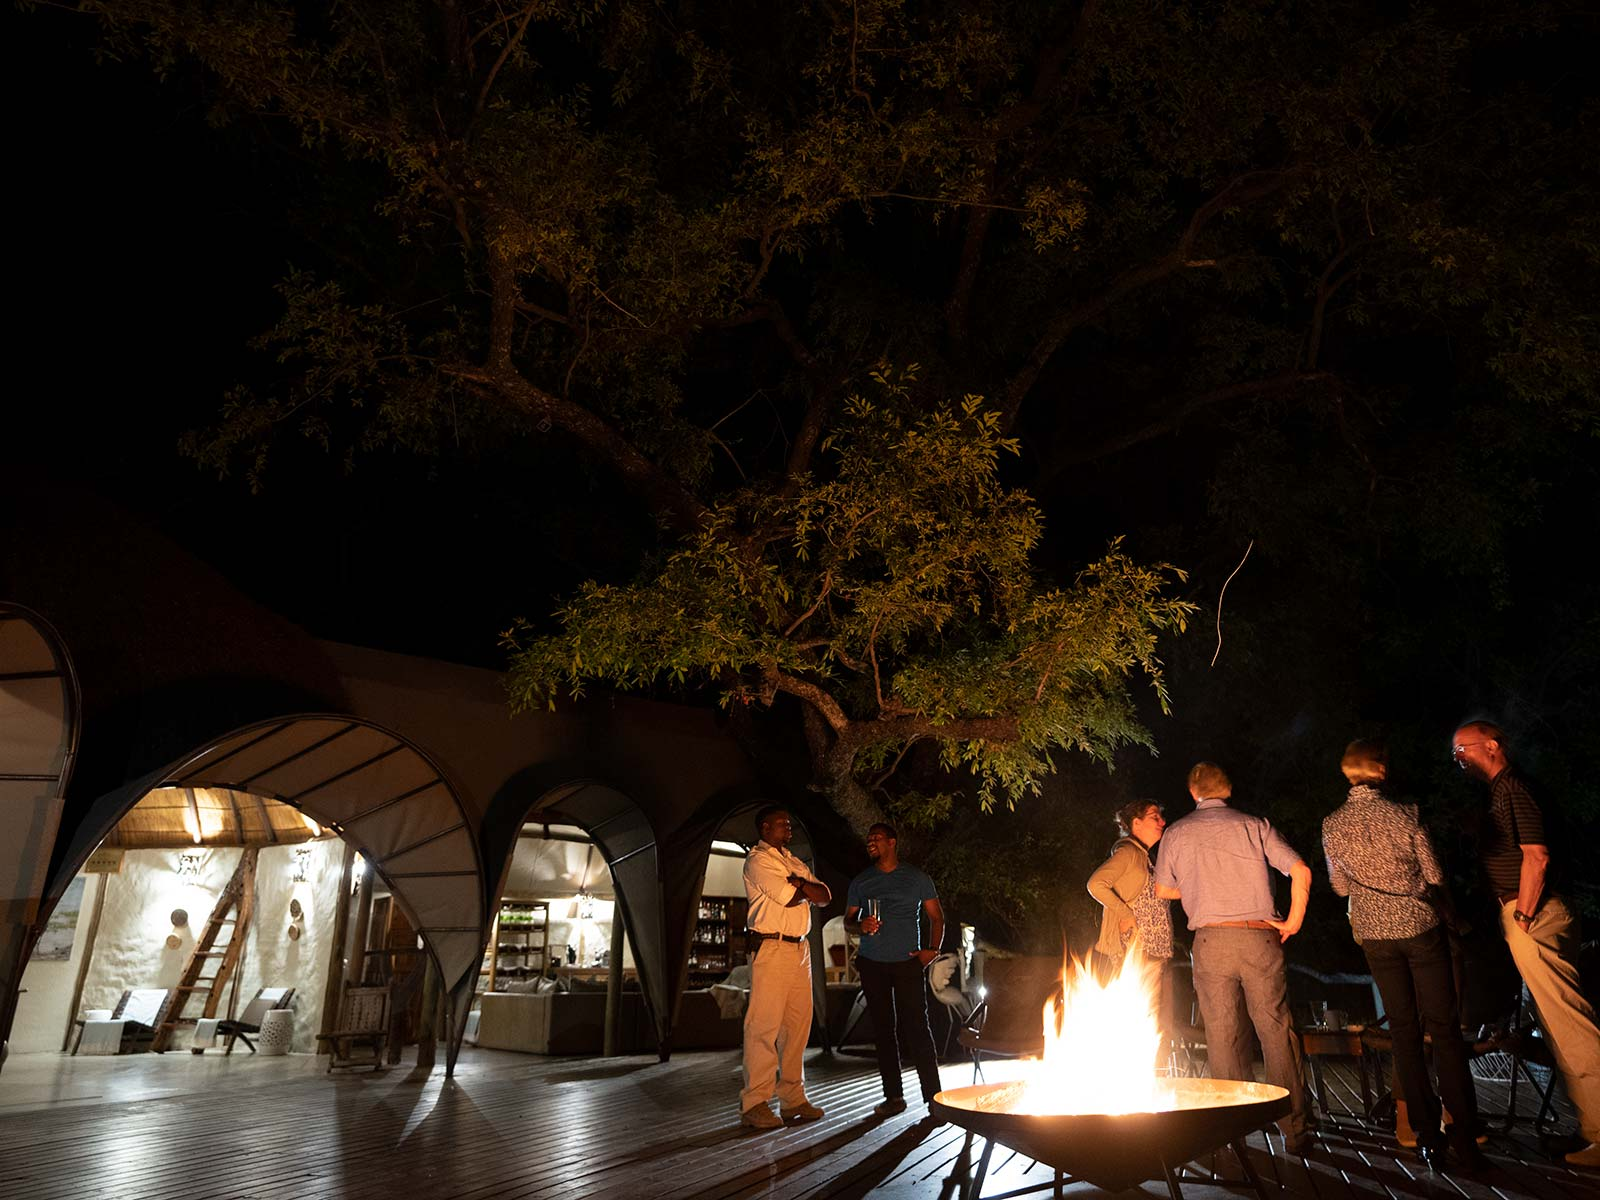 Guests by the bonfire at game reserve in Botswana, Africa. Sh*ting next to an elephant